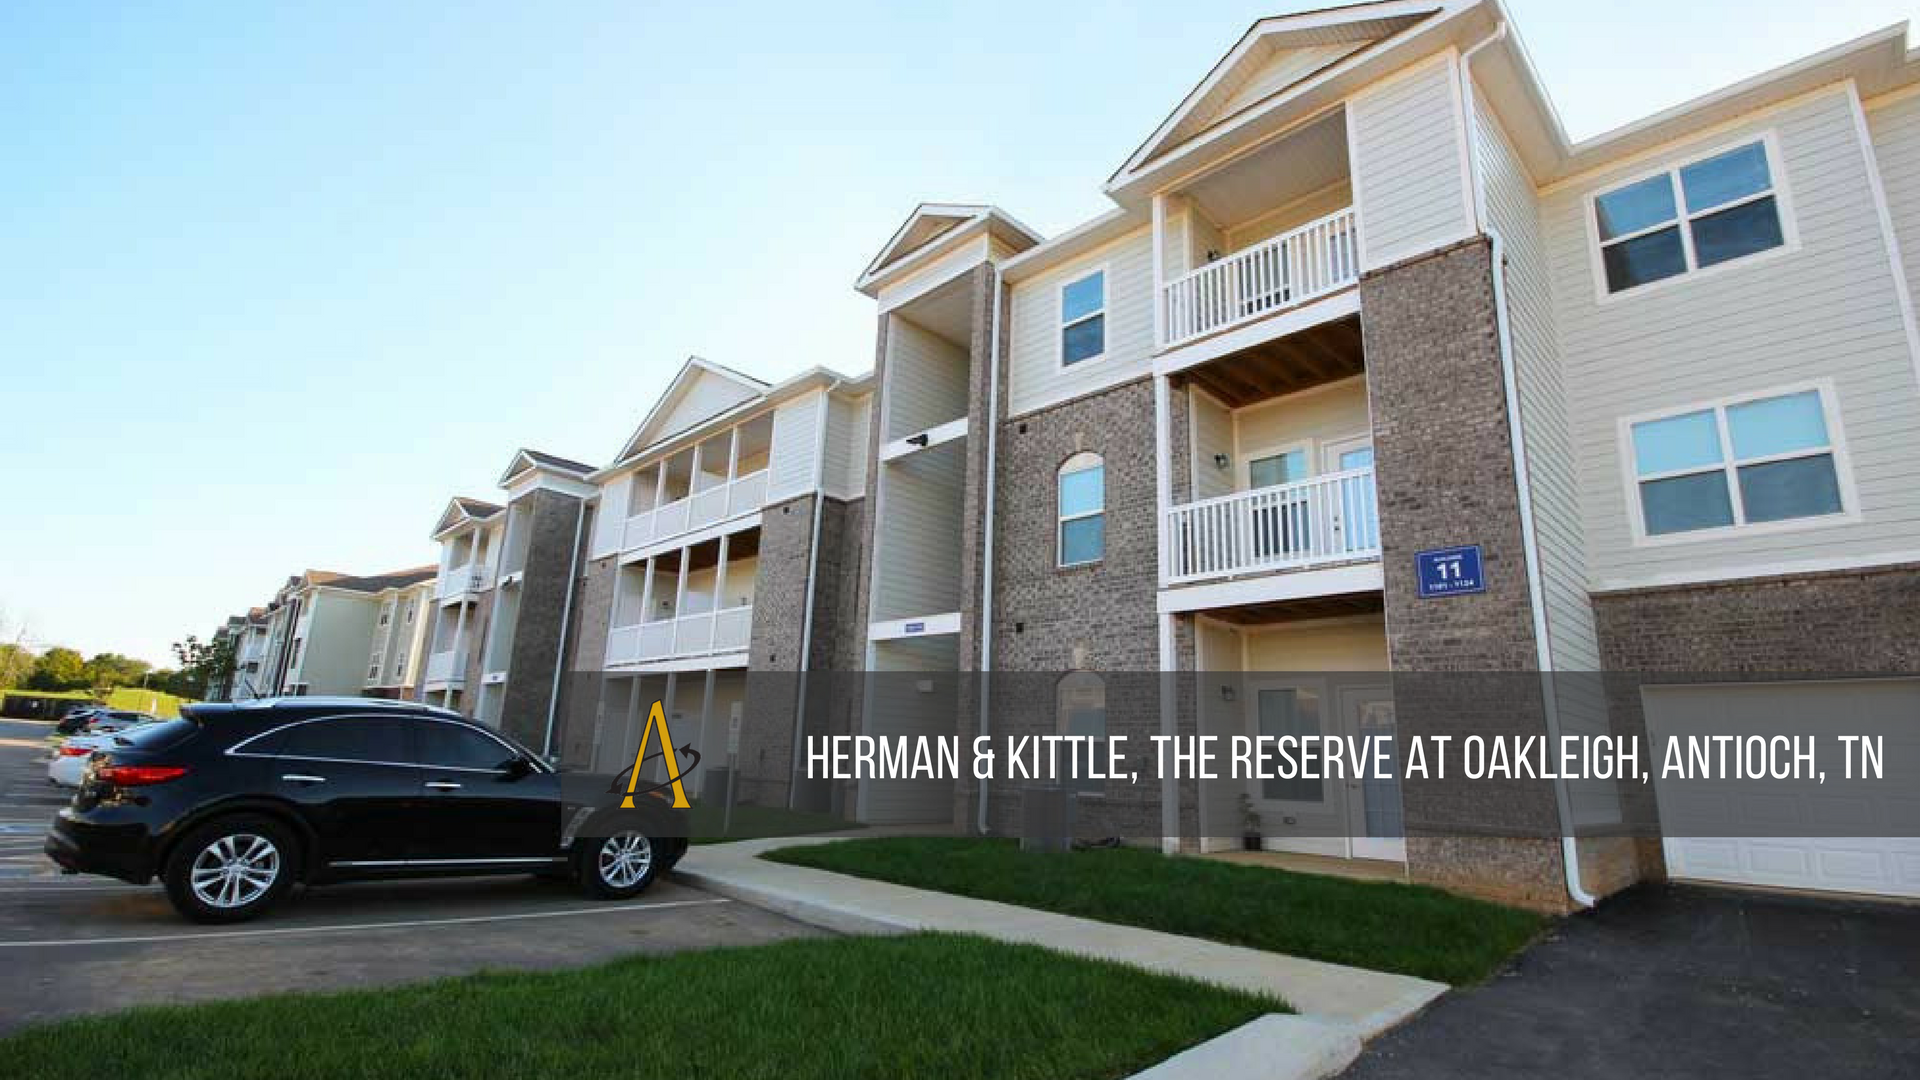 Herman & Kittle, The Reserve at Oakleigh, Antioch, TN